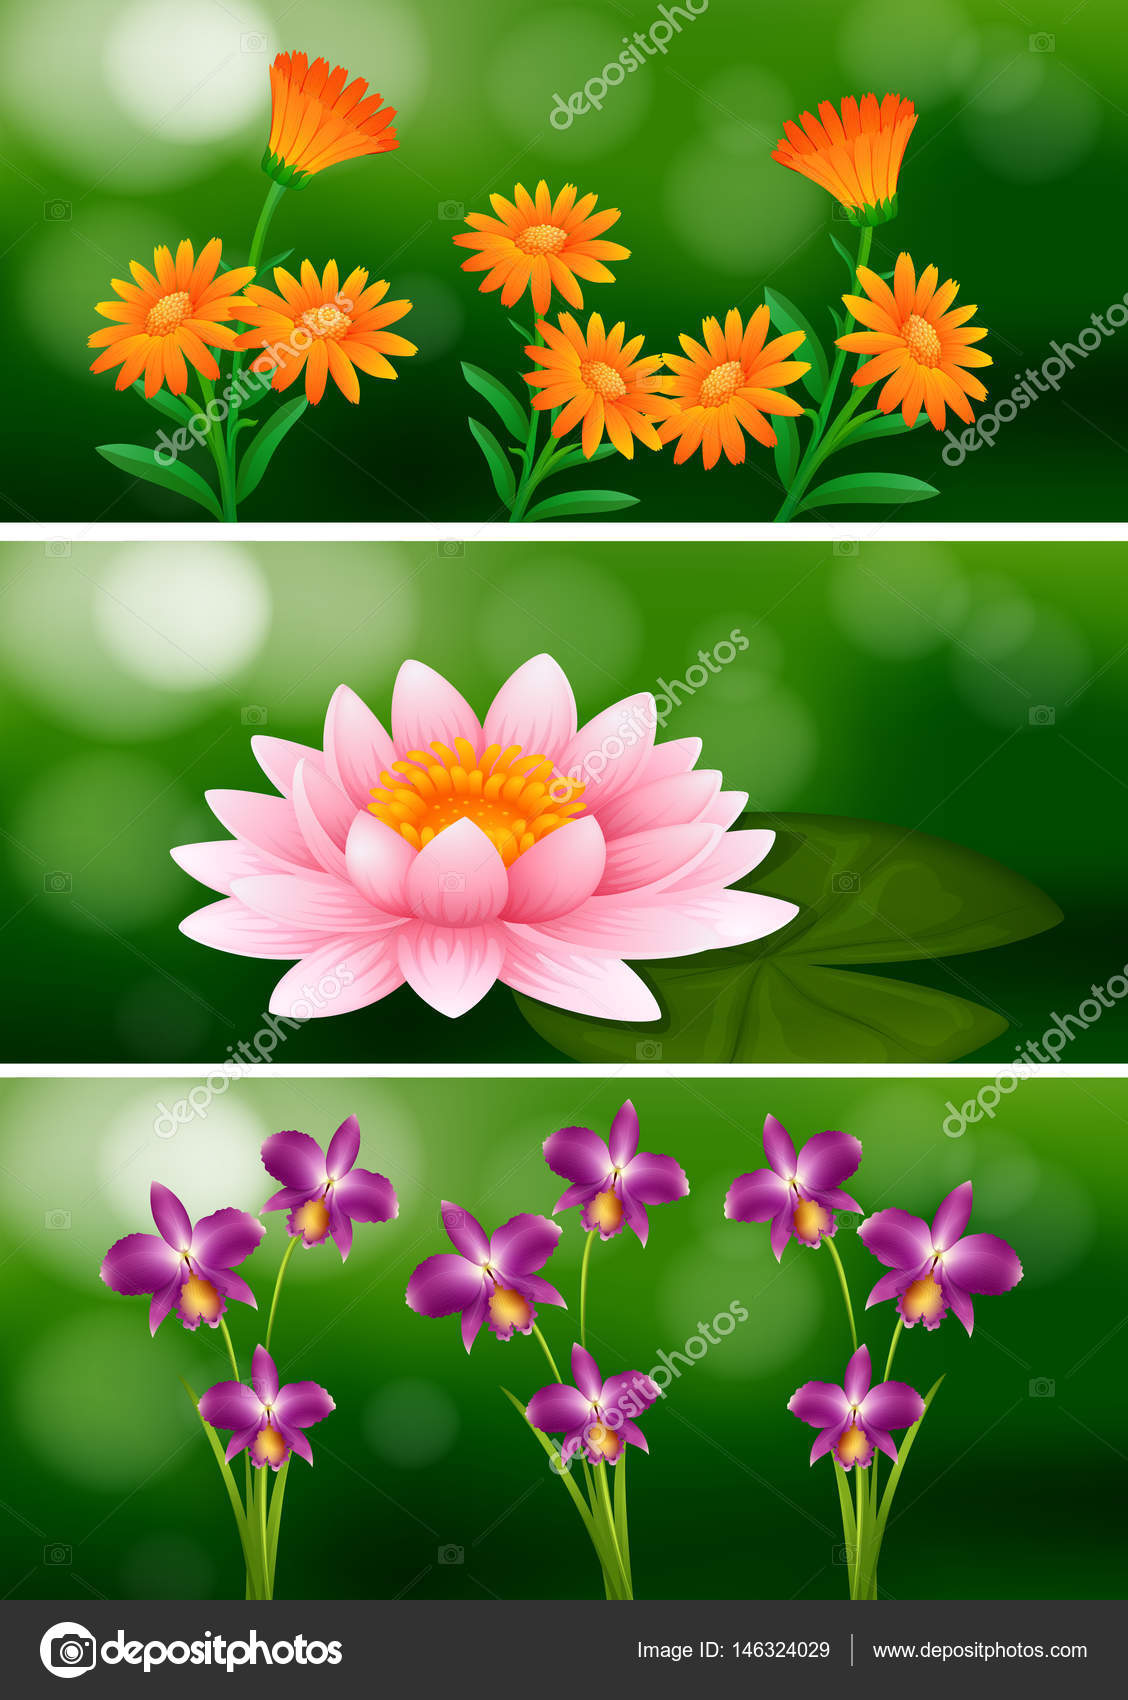 Background design with different types of flowers stock vector background design with different types of flowers illustration vector by interactimages mightylinksfo